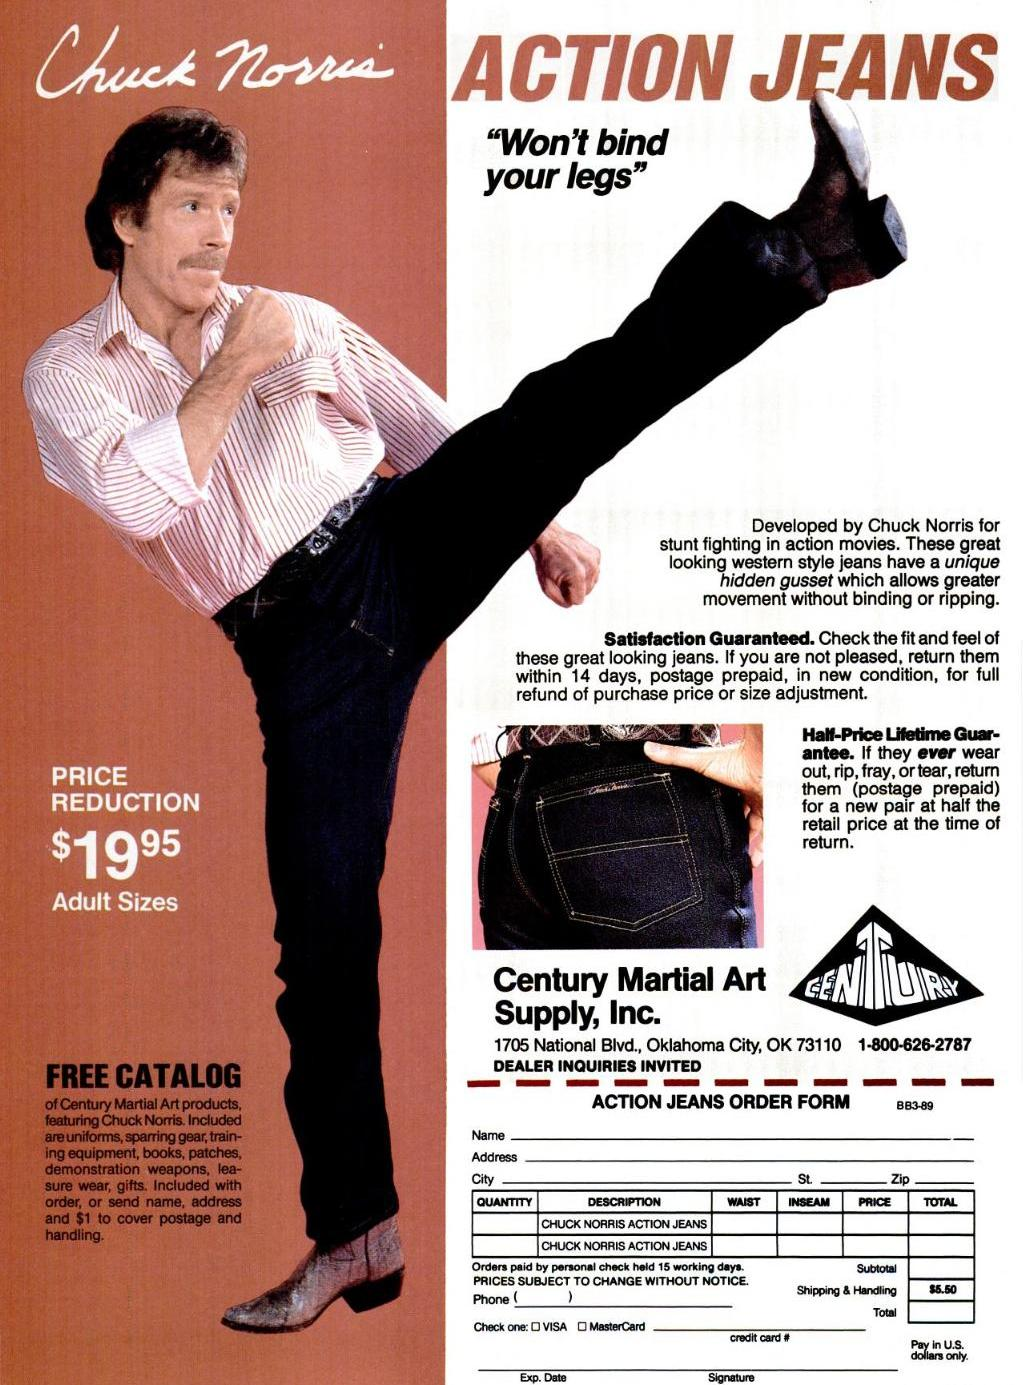 Poster of vintage Chuck Norris in Action Jeans.